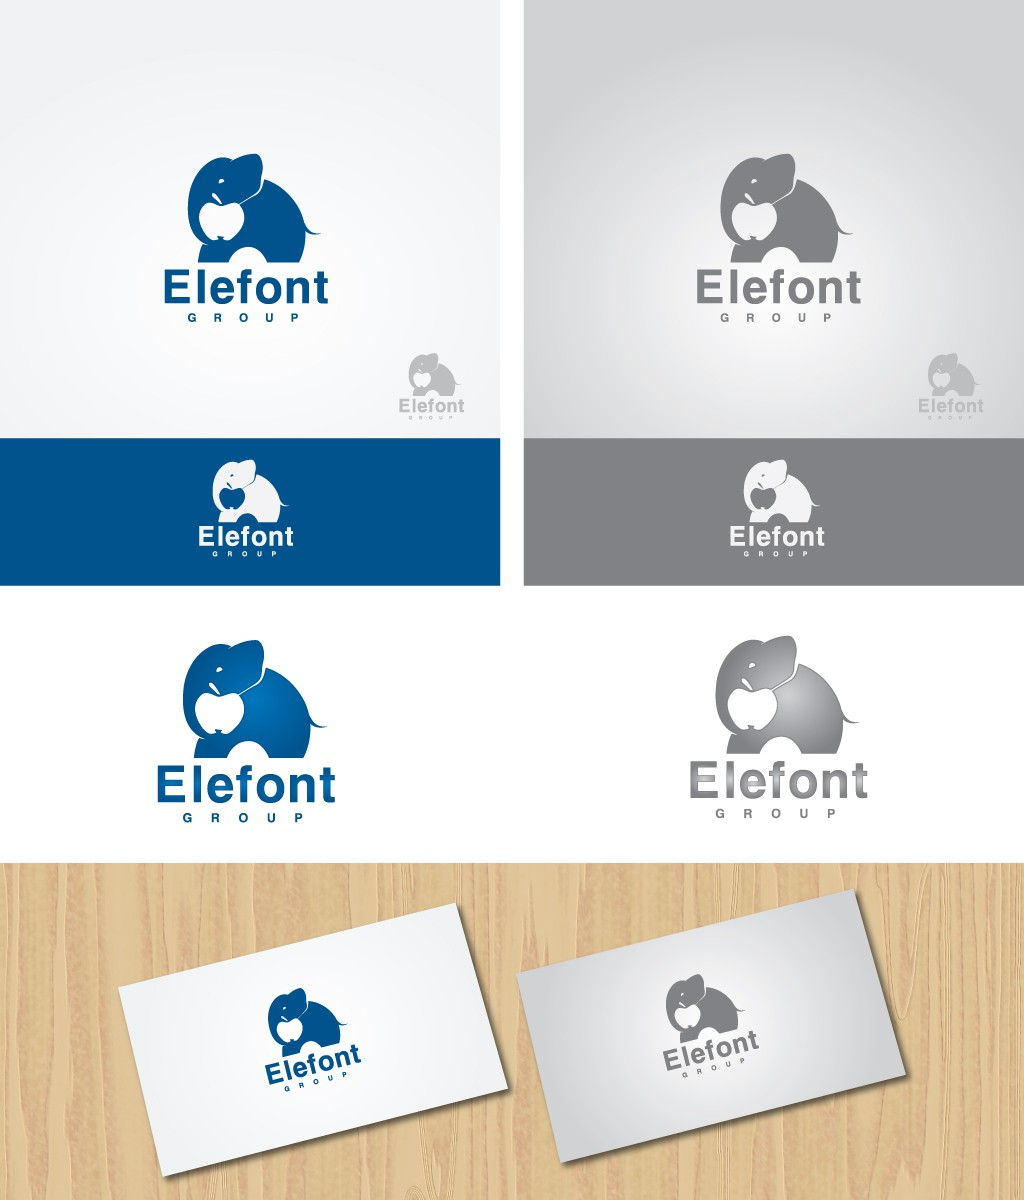 New logo wanted for Elefont Group